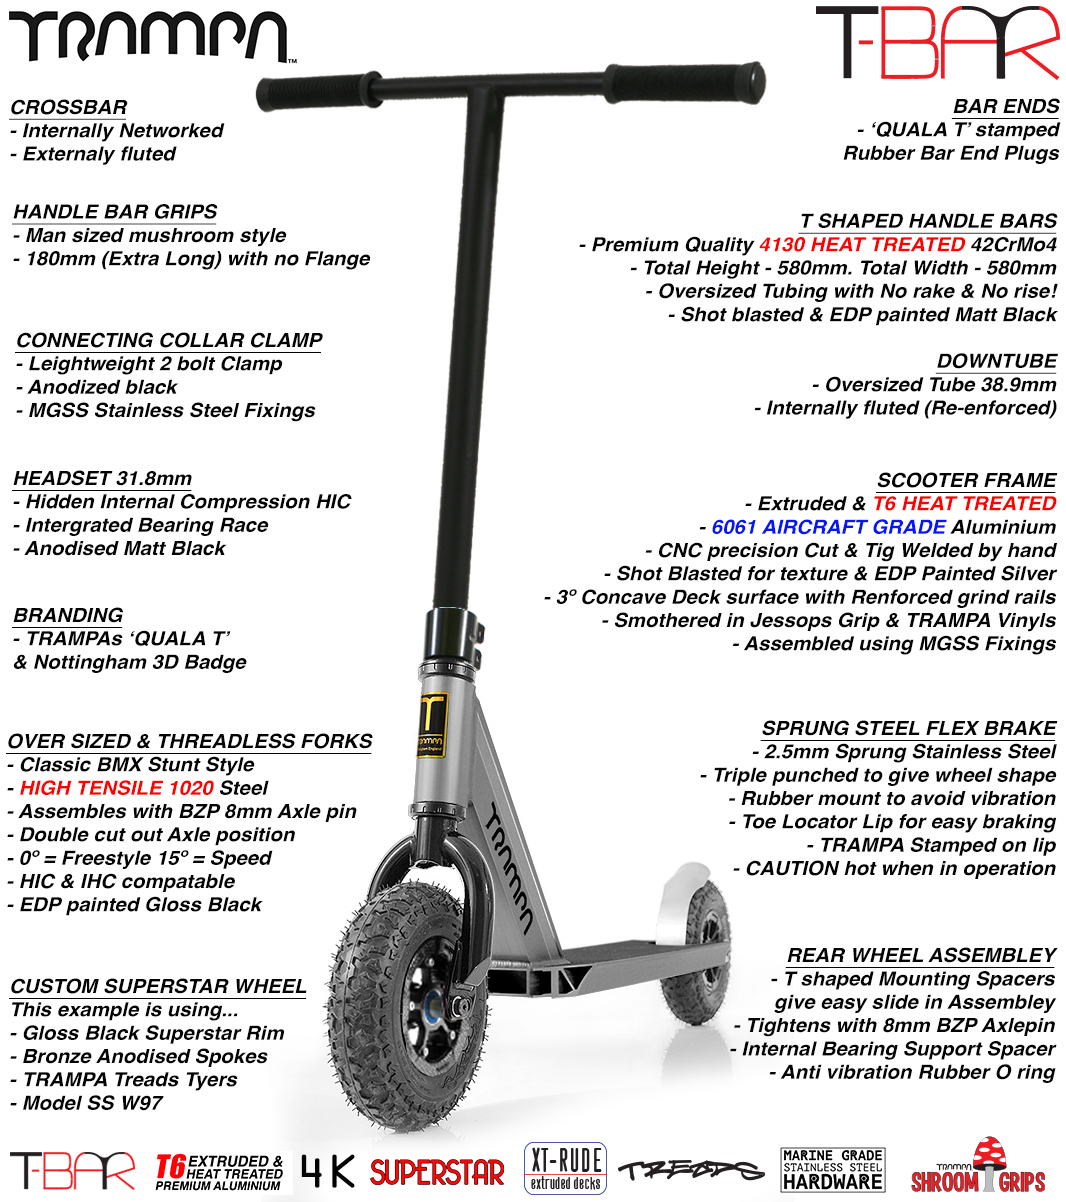 T Bar Scooter with Hi Tensile Forks